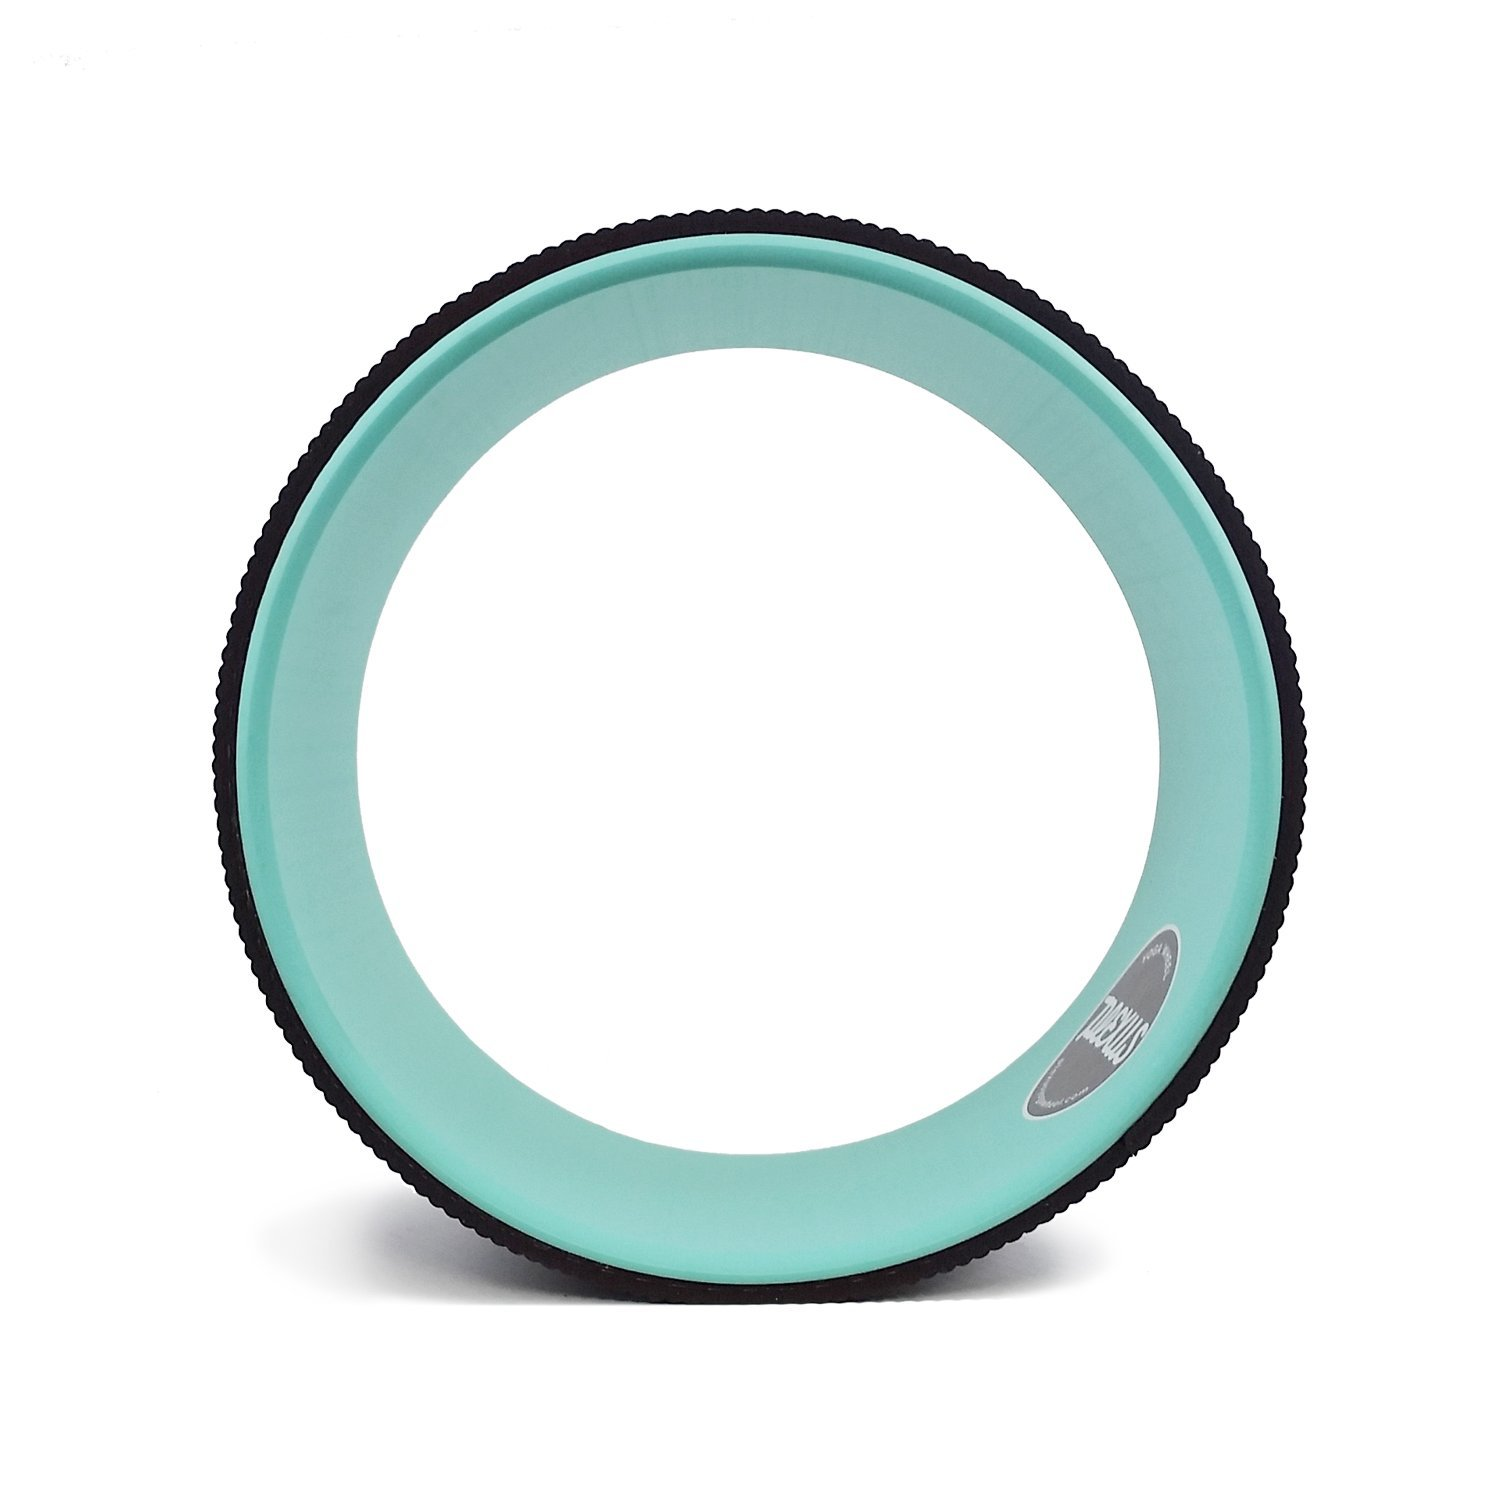 Wont Break Down like Foam Roller or Massage Roller 5MM Extra Comfort Yoga Mat Plexus Yoga Wheel Brown Aqua 10 Relieves Pain and Stress in your Back Hips Chest Shoulders Great Back Opener